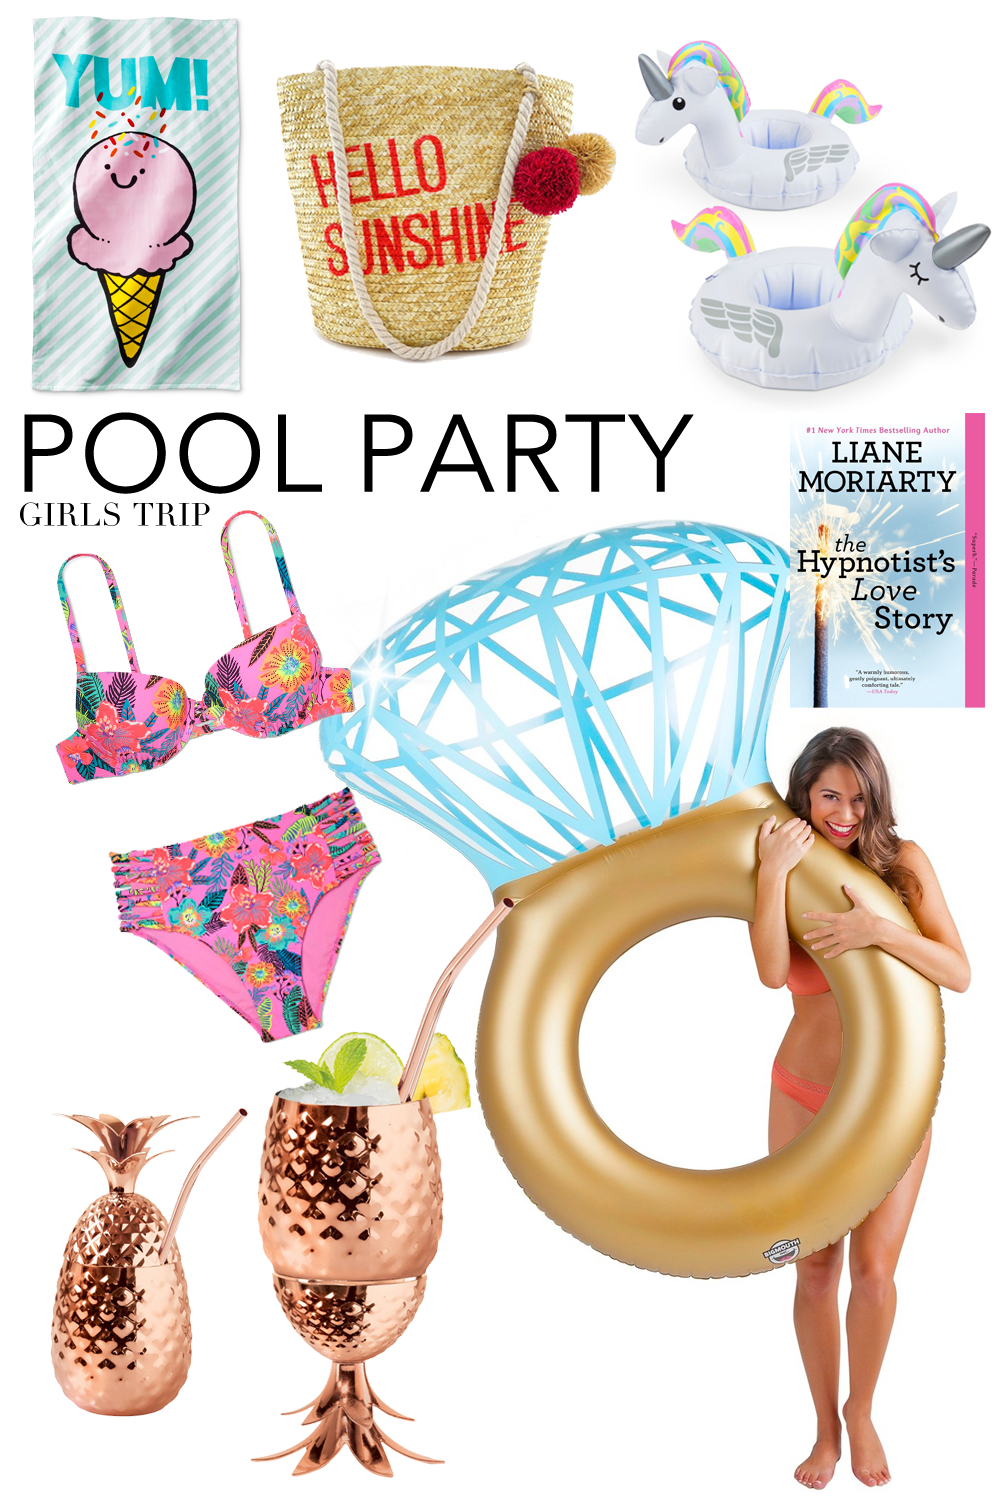 pool-party-wedding-inspiration-bachelorettes-party-wedding-weekend-savannah-wedding-planner-savannah-event-designer-ivory-and-beau-bachelorette-cruise-pool-party-bachelorette-party-inspiration.png